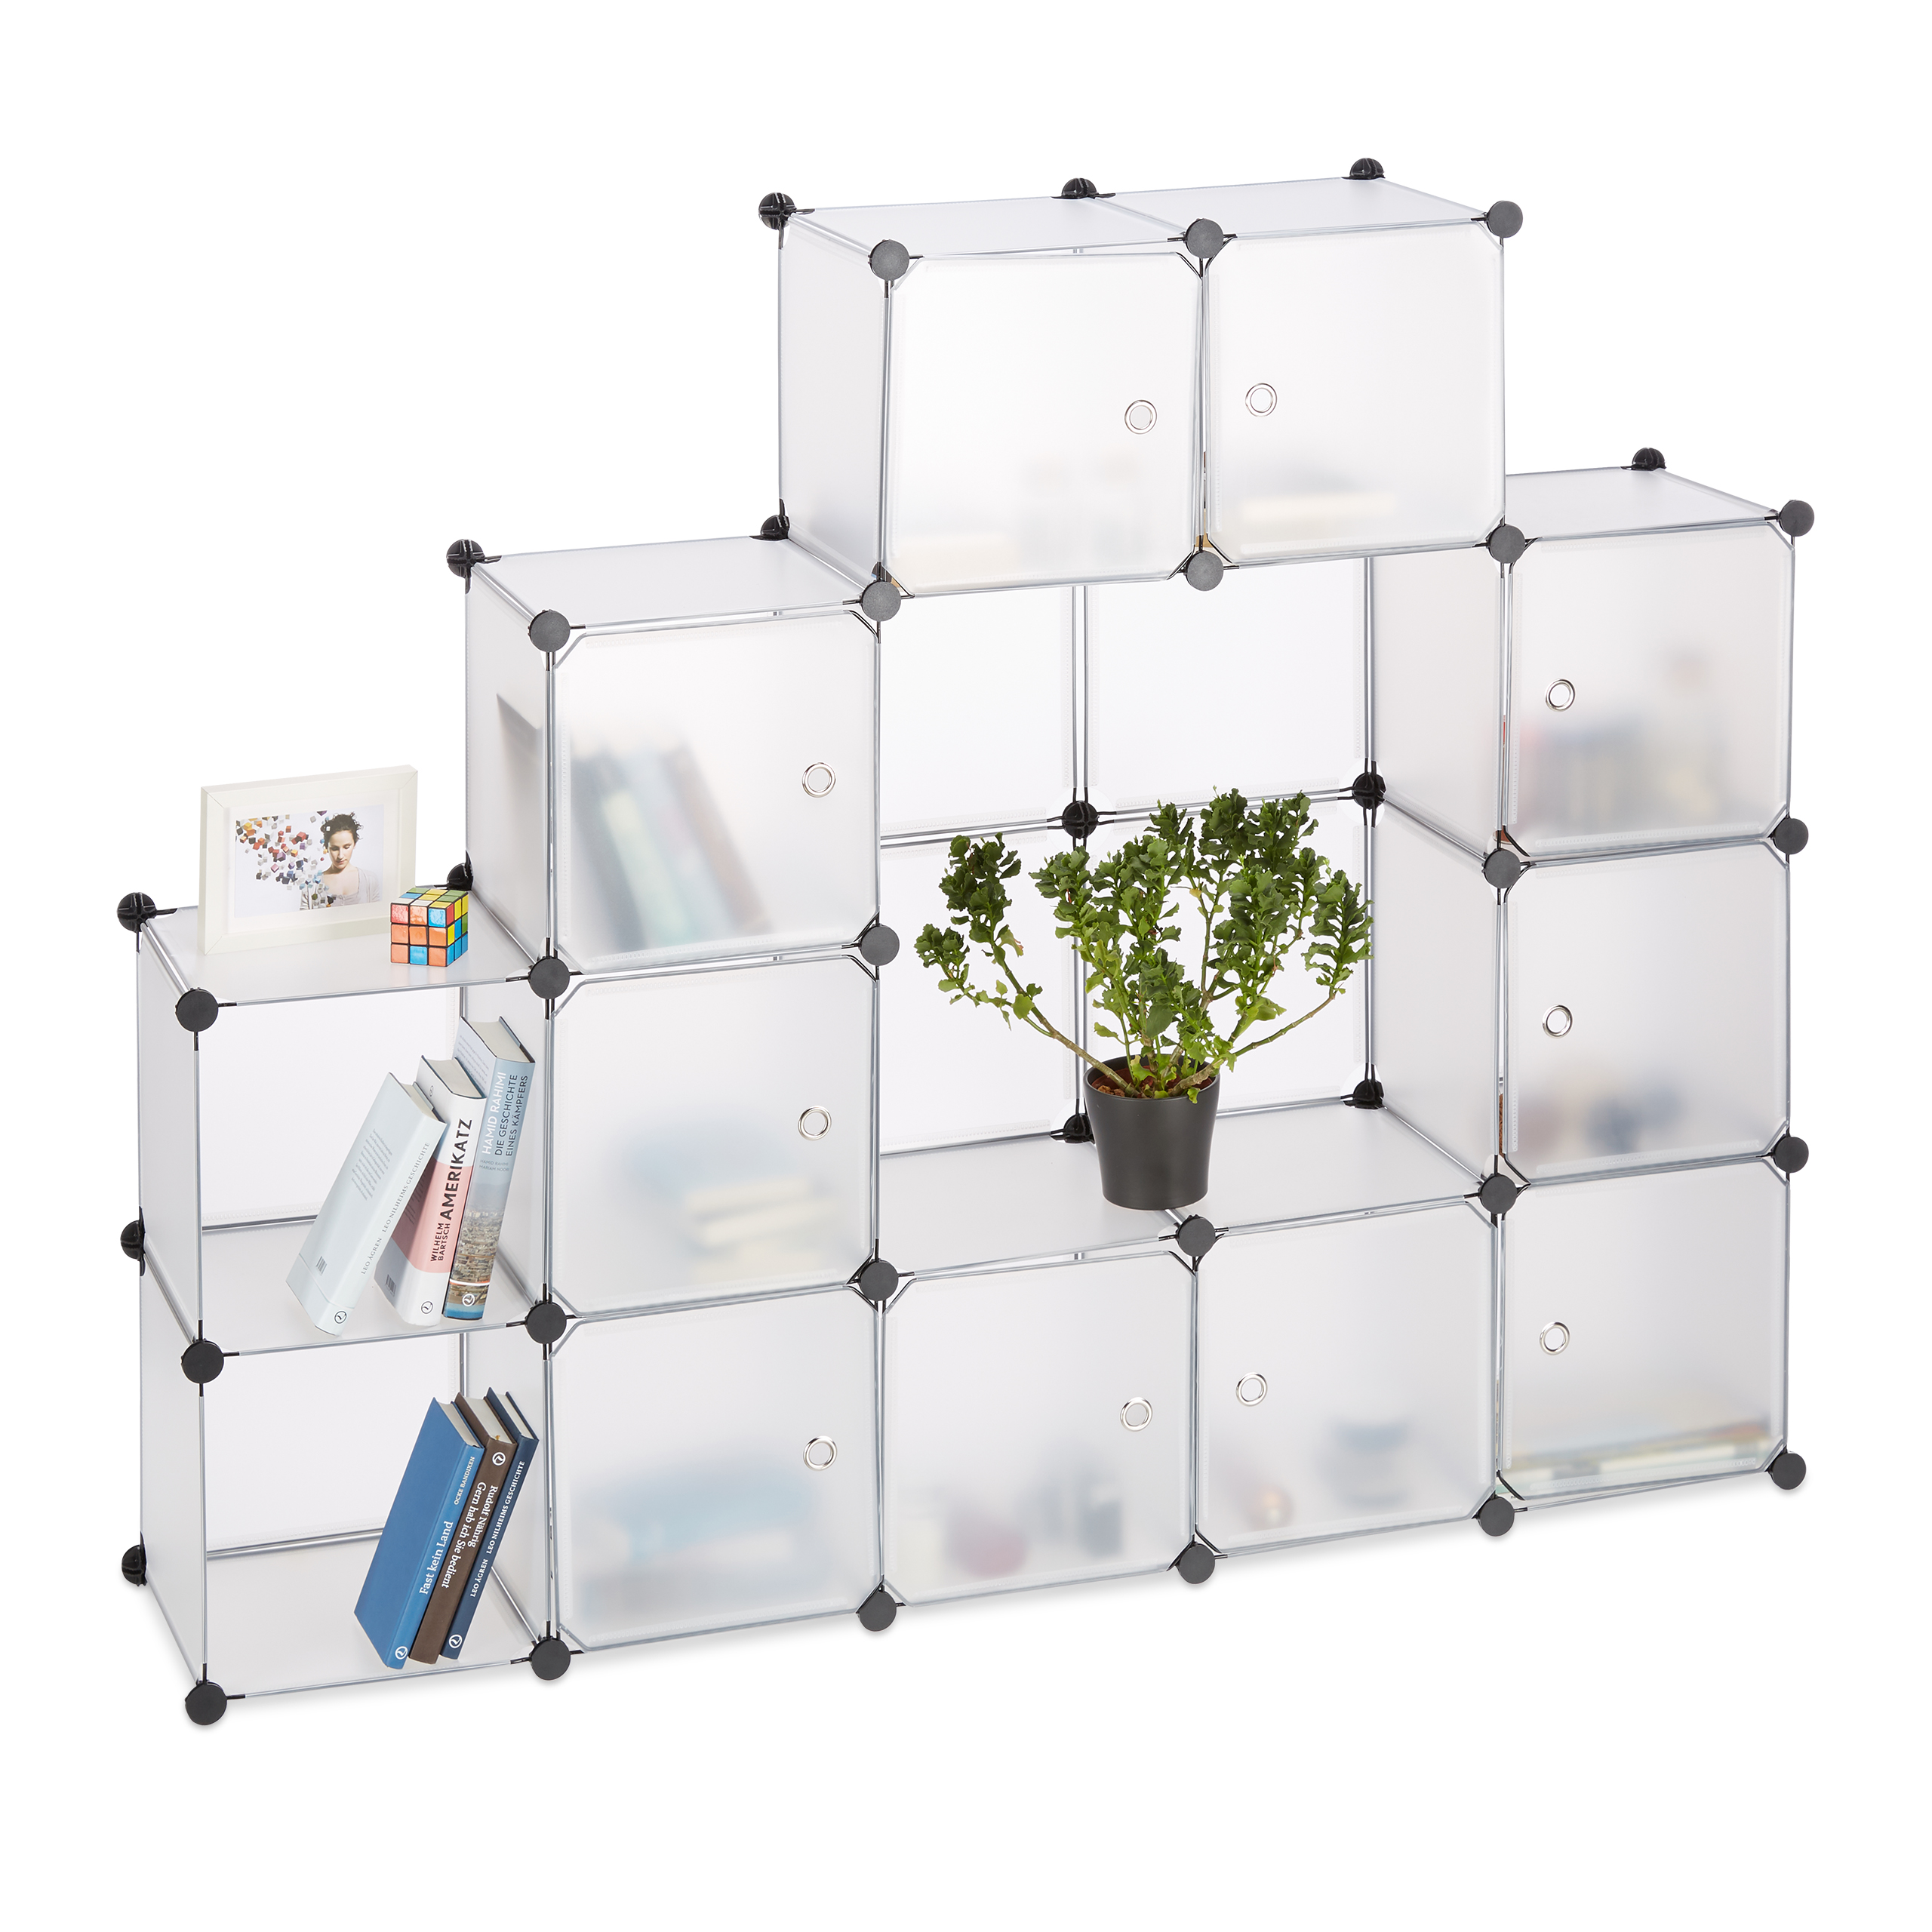 Boltless-Plastic-with-16-Compartments-Shelving-System-DIY-with-doors-Plastic-Cabinet thumbnail 10